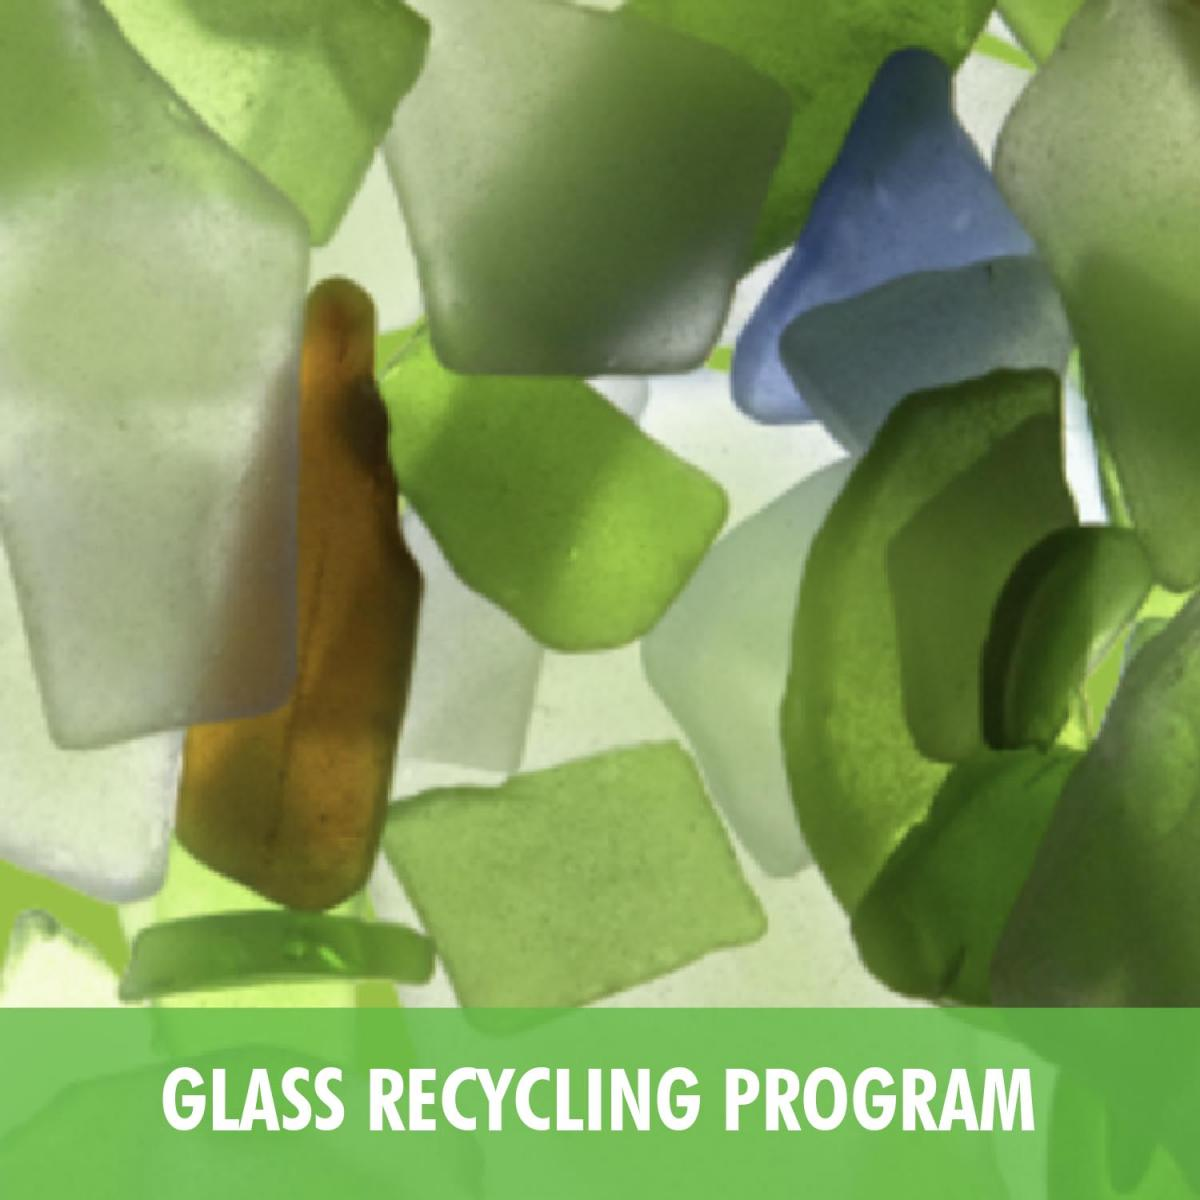 Glass Recycling Program